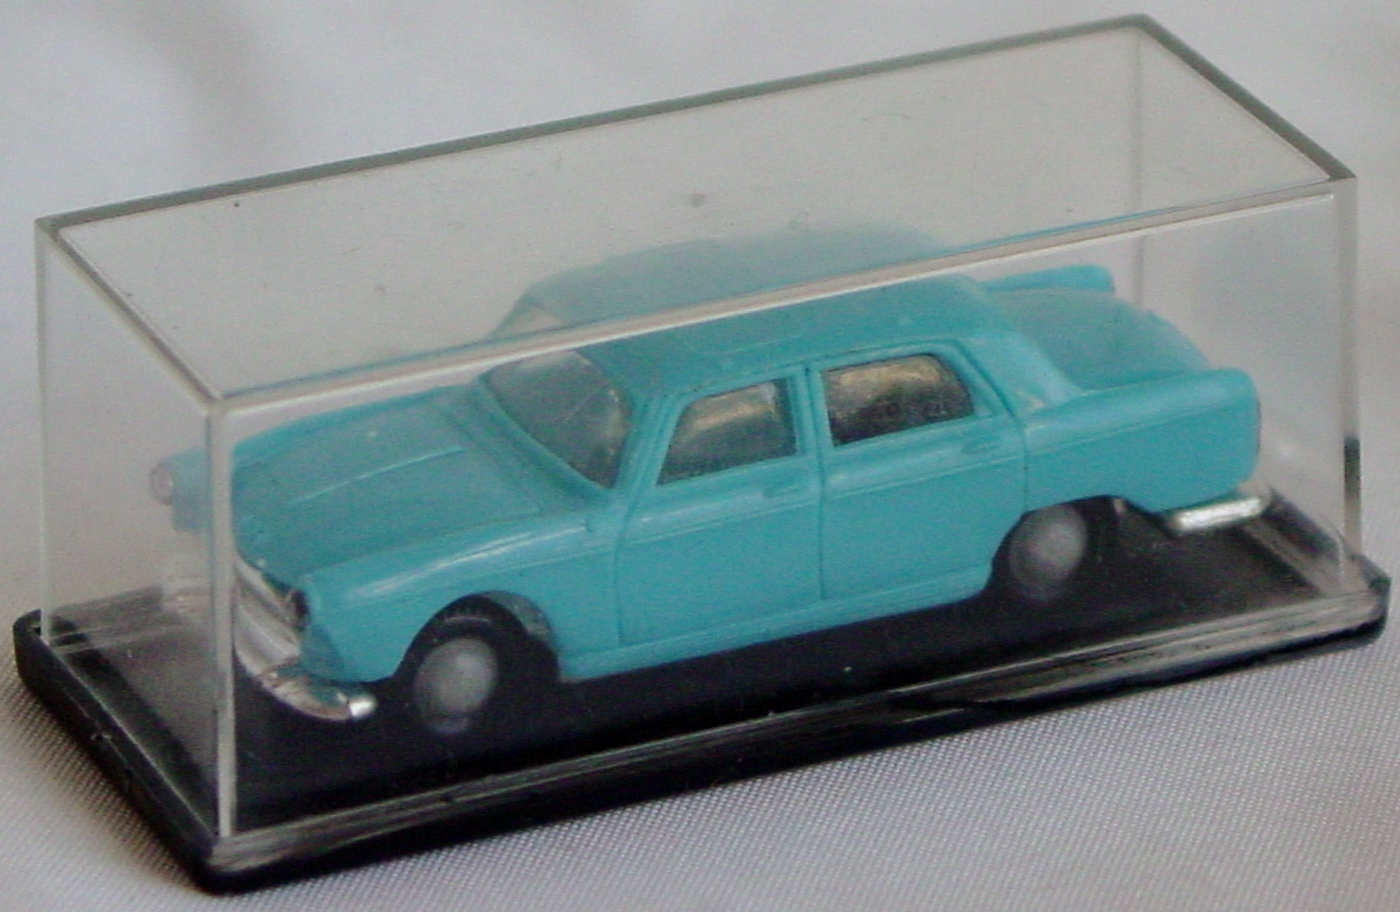 87 - NOREV HO 518 Peugeot 404 light Blue